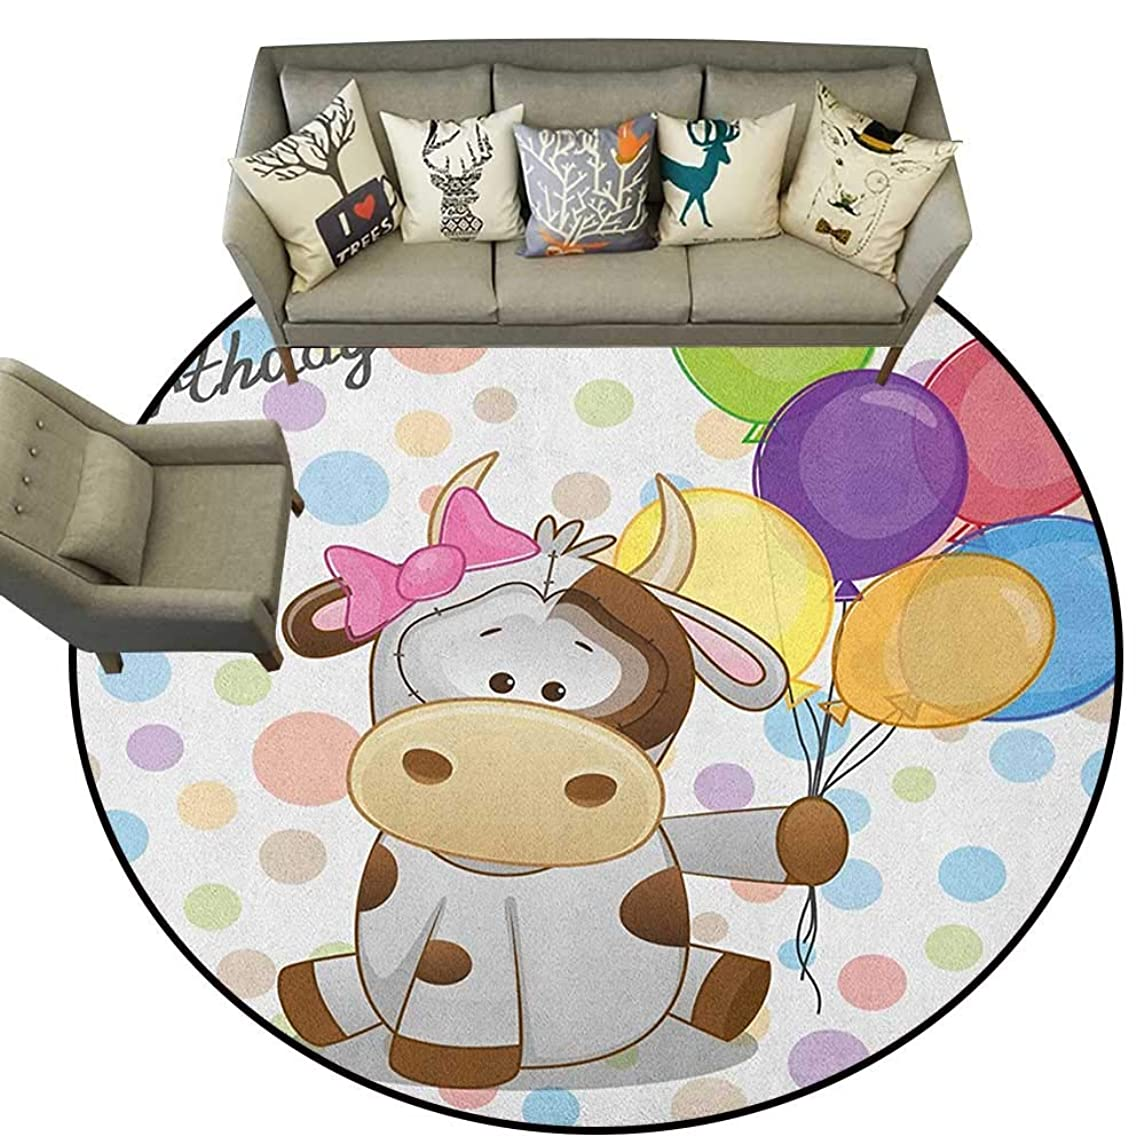 Kids Birthday,Round Rug Baby Cow Animal and Colorful Balloons on Abstract Polka Dot Backdrop Print D36 Baby Room Decor Round Carpets